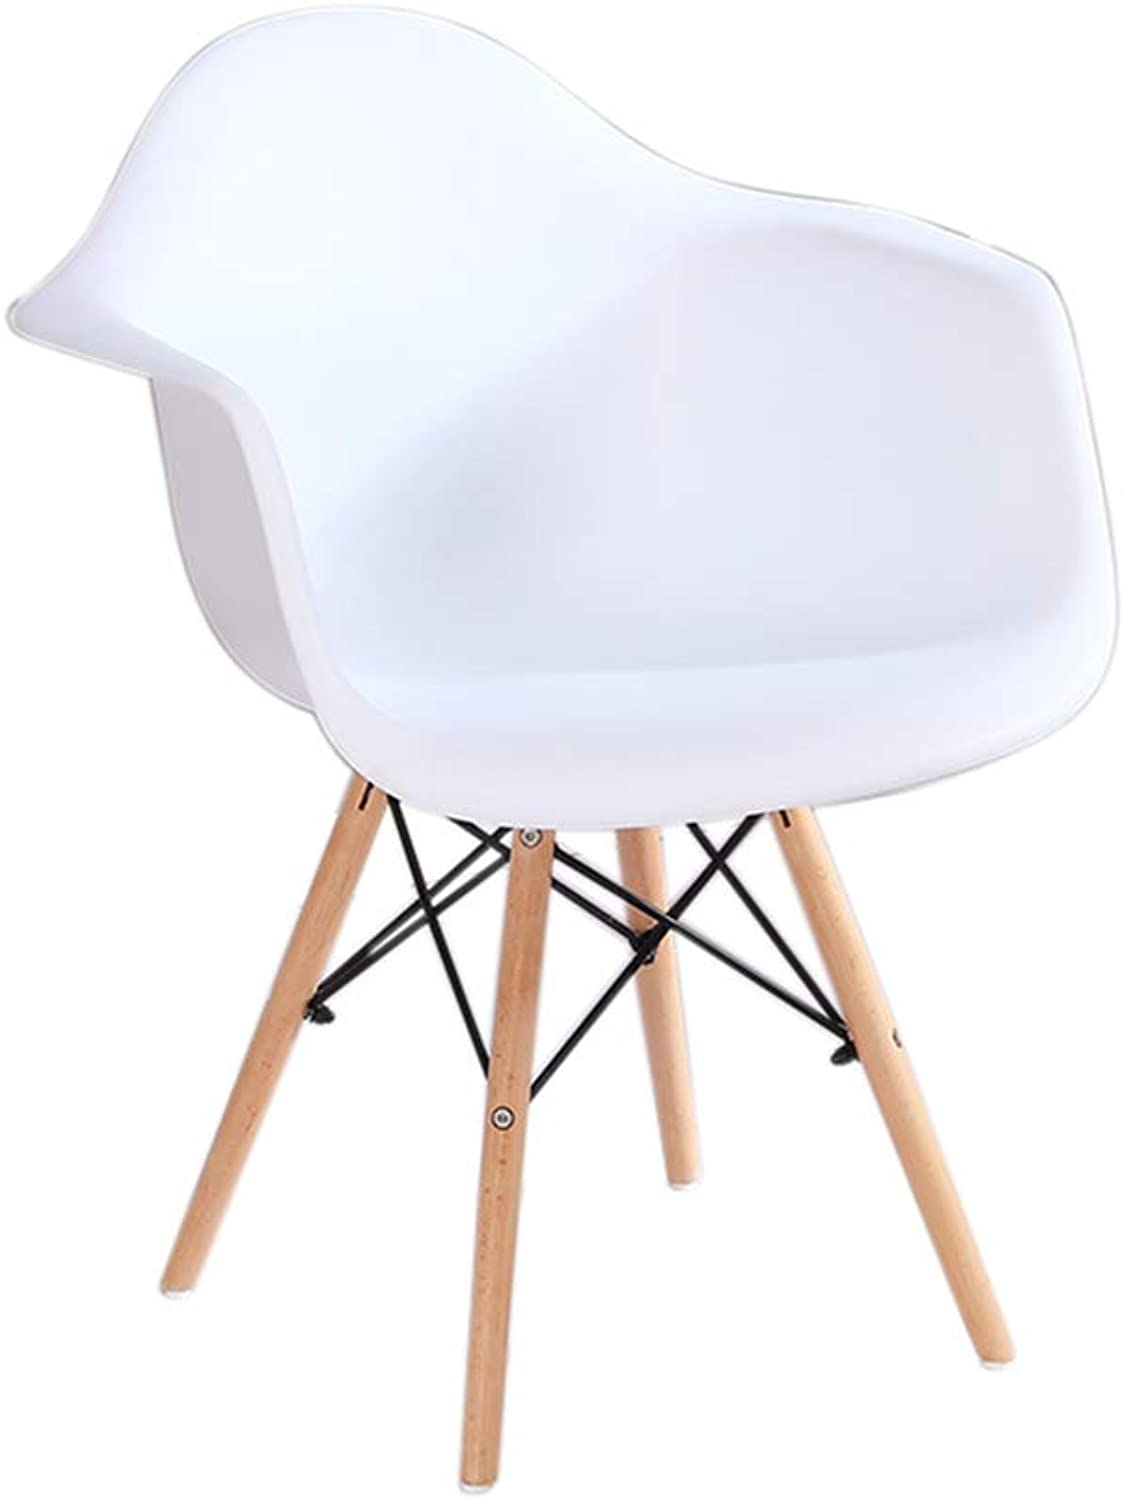 Chair - Modern Minimalist Home Decoration Plastic Armchair Small Chair (color   White, Size   41  66cm)